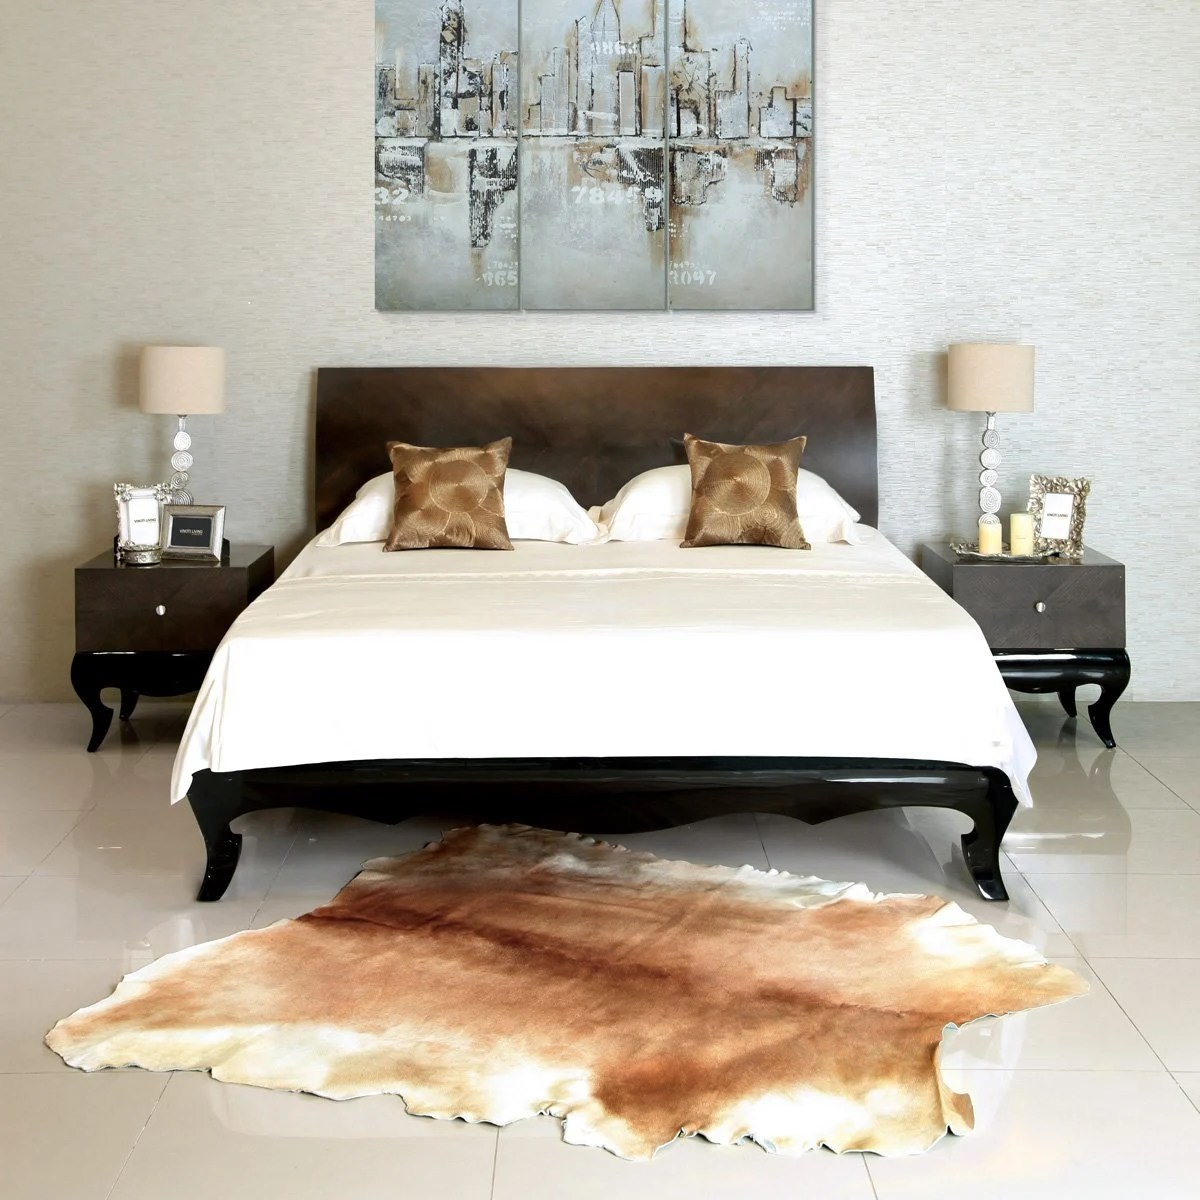 Idguides Affordable Luxury Furniture And Home Decor In Indonesia